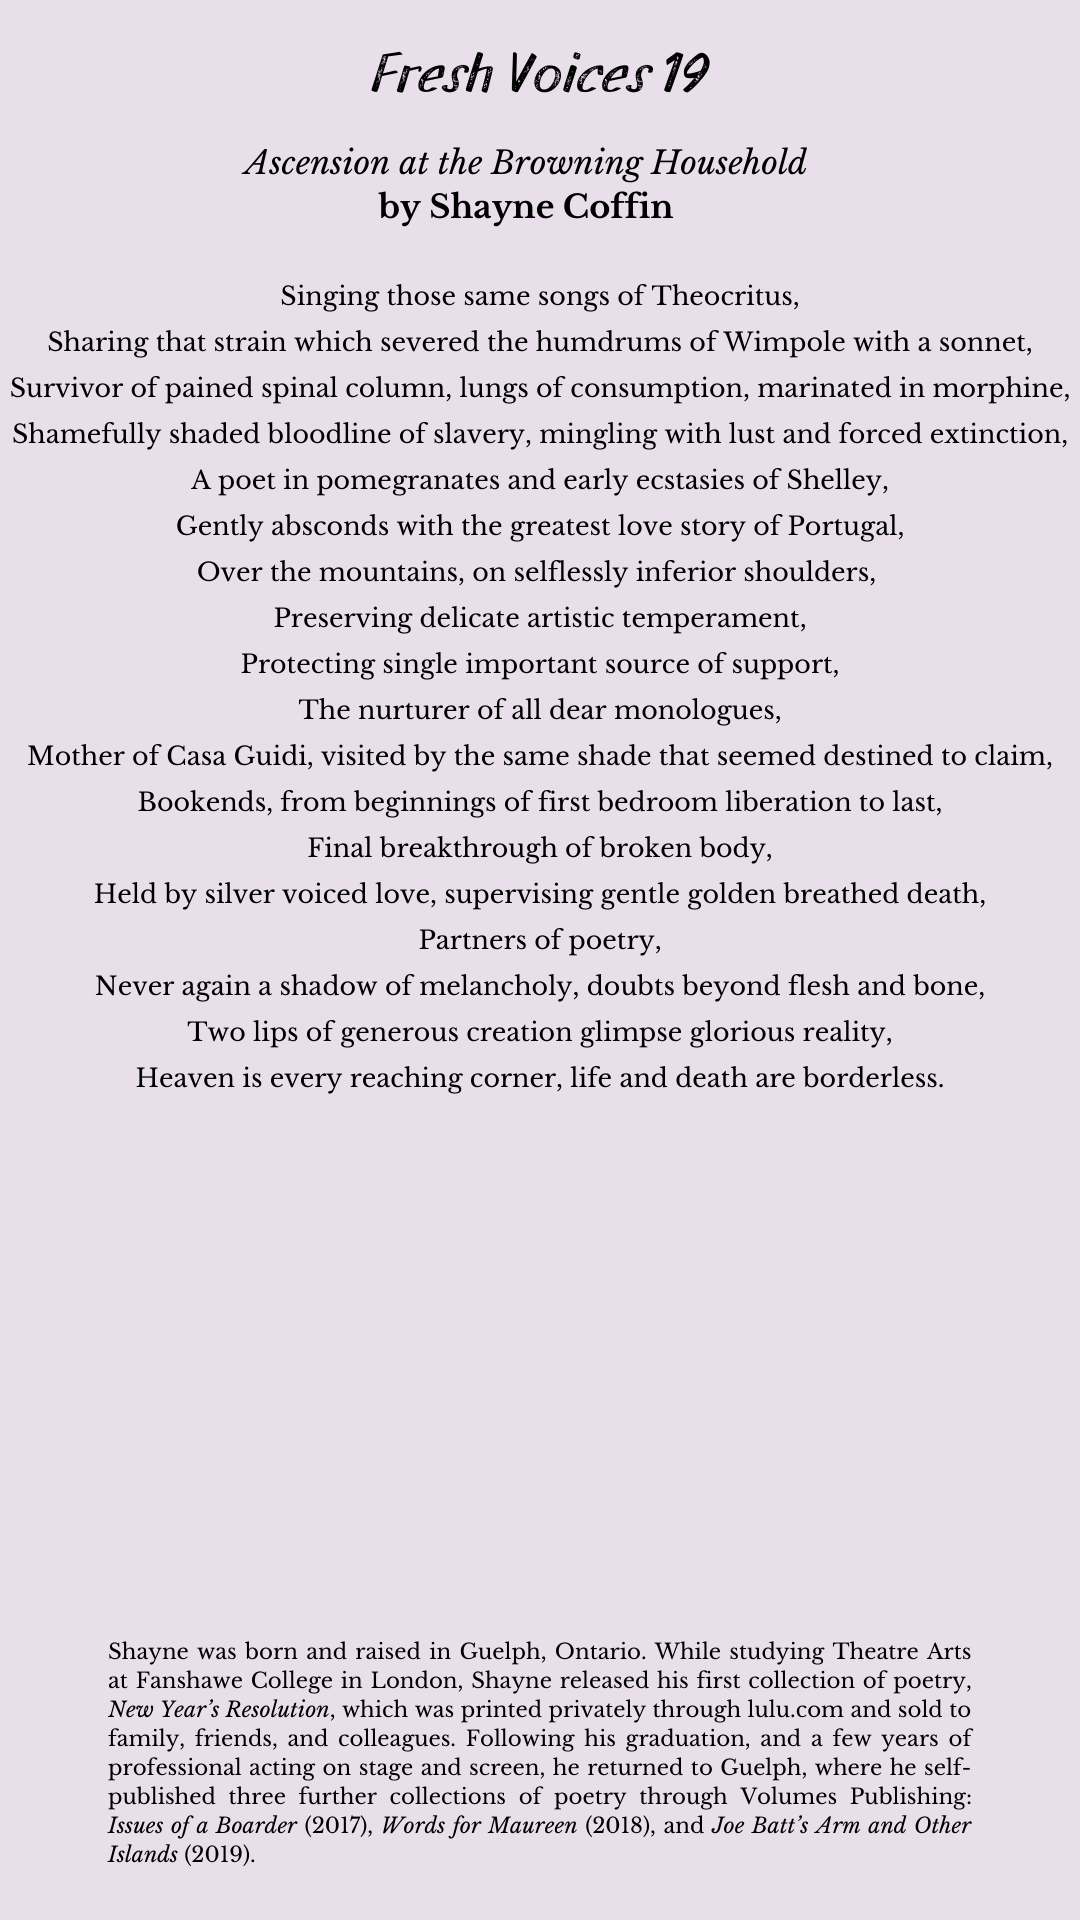 Poem title: Ascension at the Browning Household Poem Author: Shayne Coffin Poem: Singing those same songs of Theocritus, Sharing that strain which severed the humdrums of Wimpole with a sonnet, Survivor of pained spinal column, lungs of consumption, marinated in morphine, Shamefully shaded bloodline of slavery, mingling with lust and forced extinction, A poet in pomegranates and early ecstasies of Shelley, Gently absconds with the greatest love story of Portugal, Over the mountains, on selflessly inferior shoulders, Preserving delicate artistic temperament, Protecting single important source of support, The nurturer of all dear monologues, Mother of Casa Guidi, visited by the same shade that seemed destined to claim, Bookends, from beginnings of first bedroom liberation to last, Final breakthrough of broken body, Held by silver voiced love, supervising gentle golden breathed death, Partners of poetry, Never again a shadow of melancholy, doubts beyond flesh and bone, Two lips of generous creation glimpse glorious reality, Heaven is every reaching corner, life and death are borderless. End of Poem. Author info: Shayne was born and raised in Guelph, Ontario. While studying Theatre Arts at Fanshawe College in London, Shayne released his first collection of poetry, New Year's Resolution, which was printed privately through lulu.com and sold to family, friends, and colleagues. Following his graduation, and a few years of professional acting on stage and screen, he returned to Guelph, where he self-published three further collections of poetry through Volumes Publishing: Issues of a Boarder (2017), Words for Maureen (2018), and Joe Batt's Arm and Other Islands (2019).